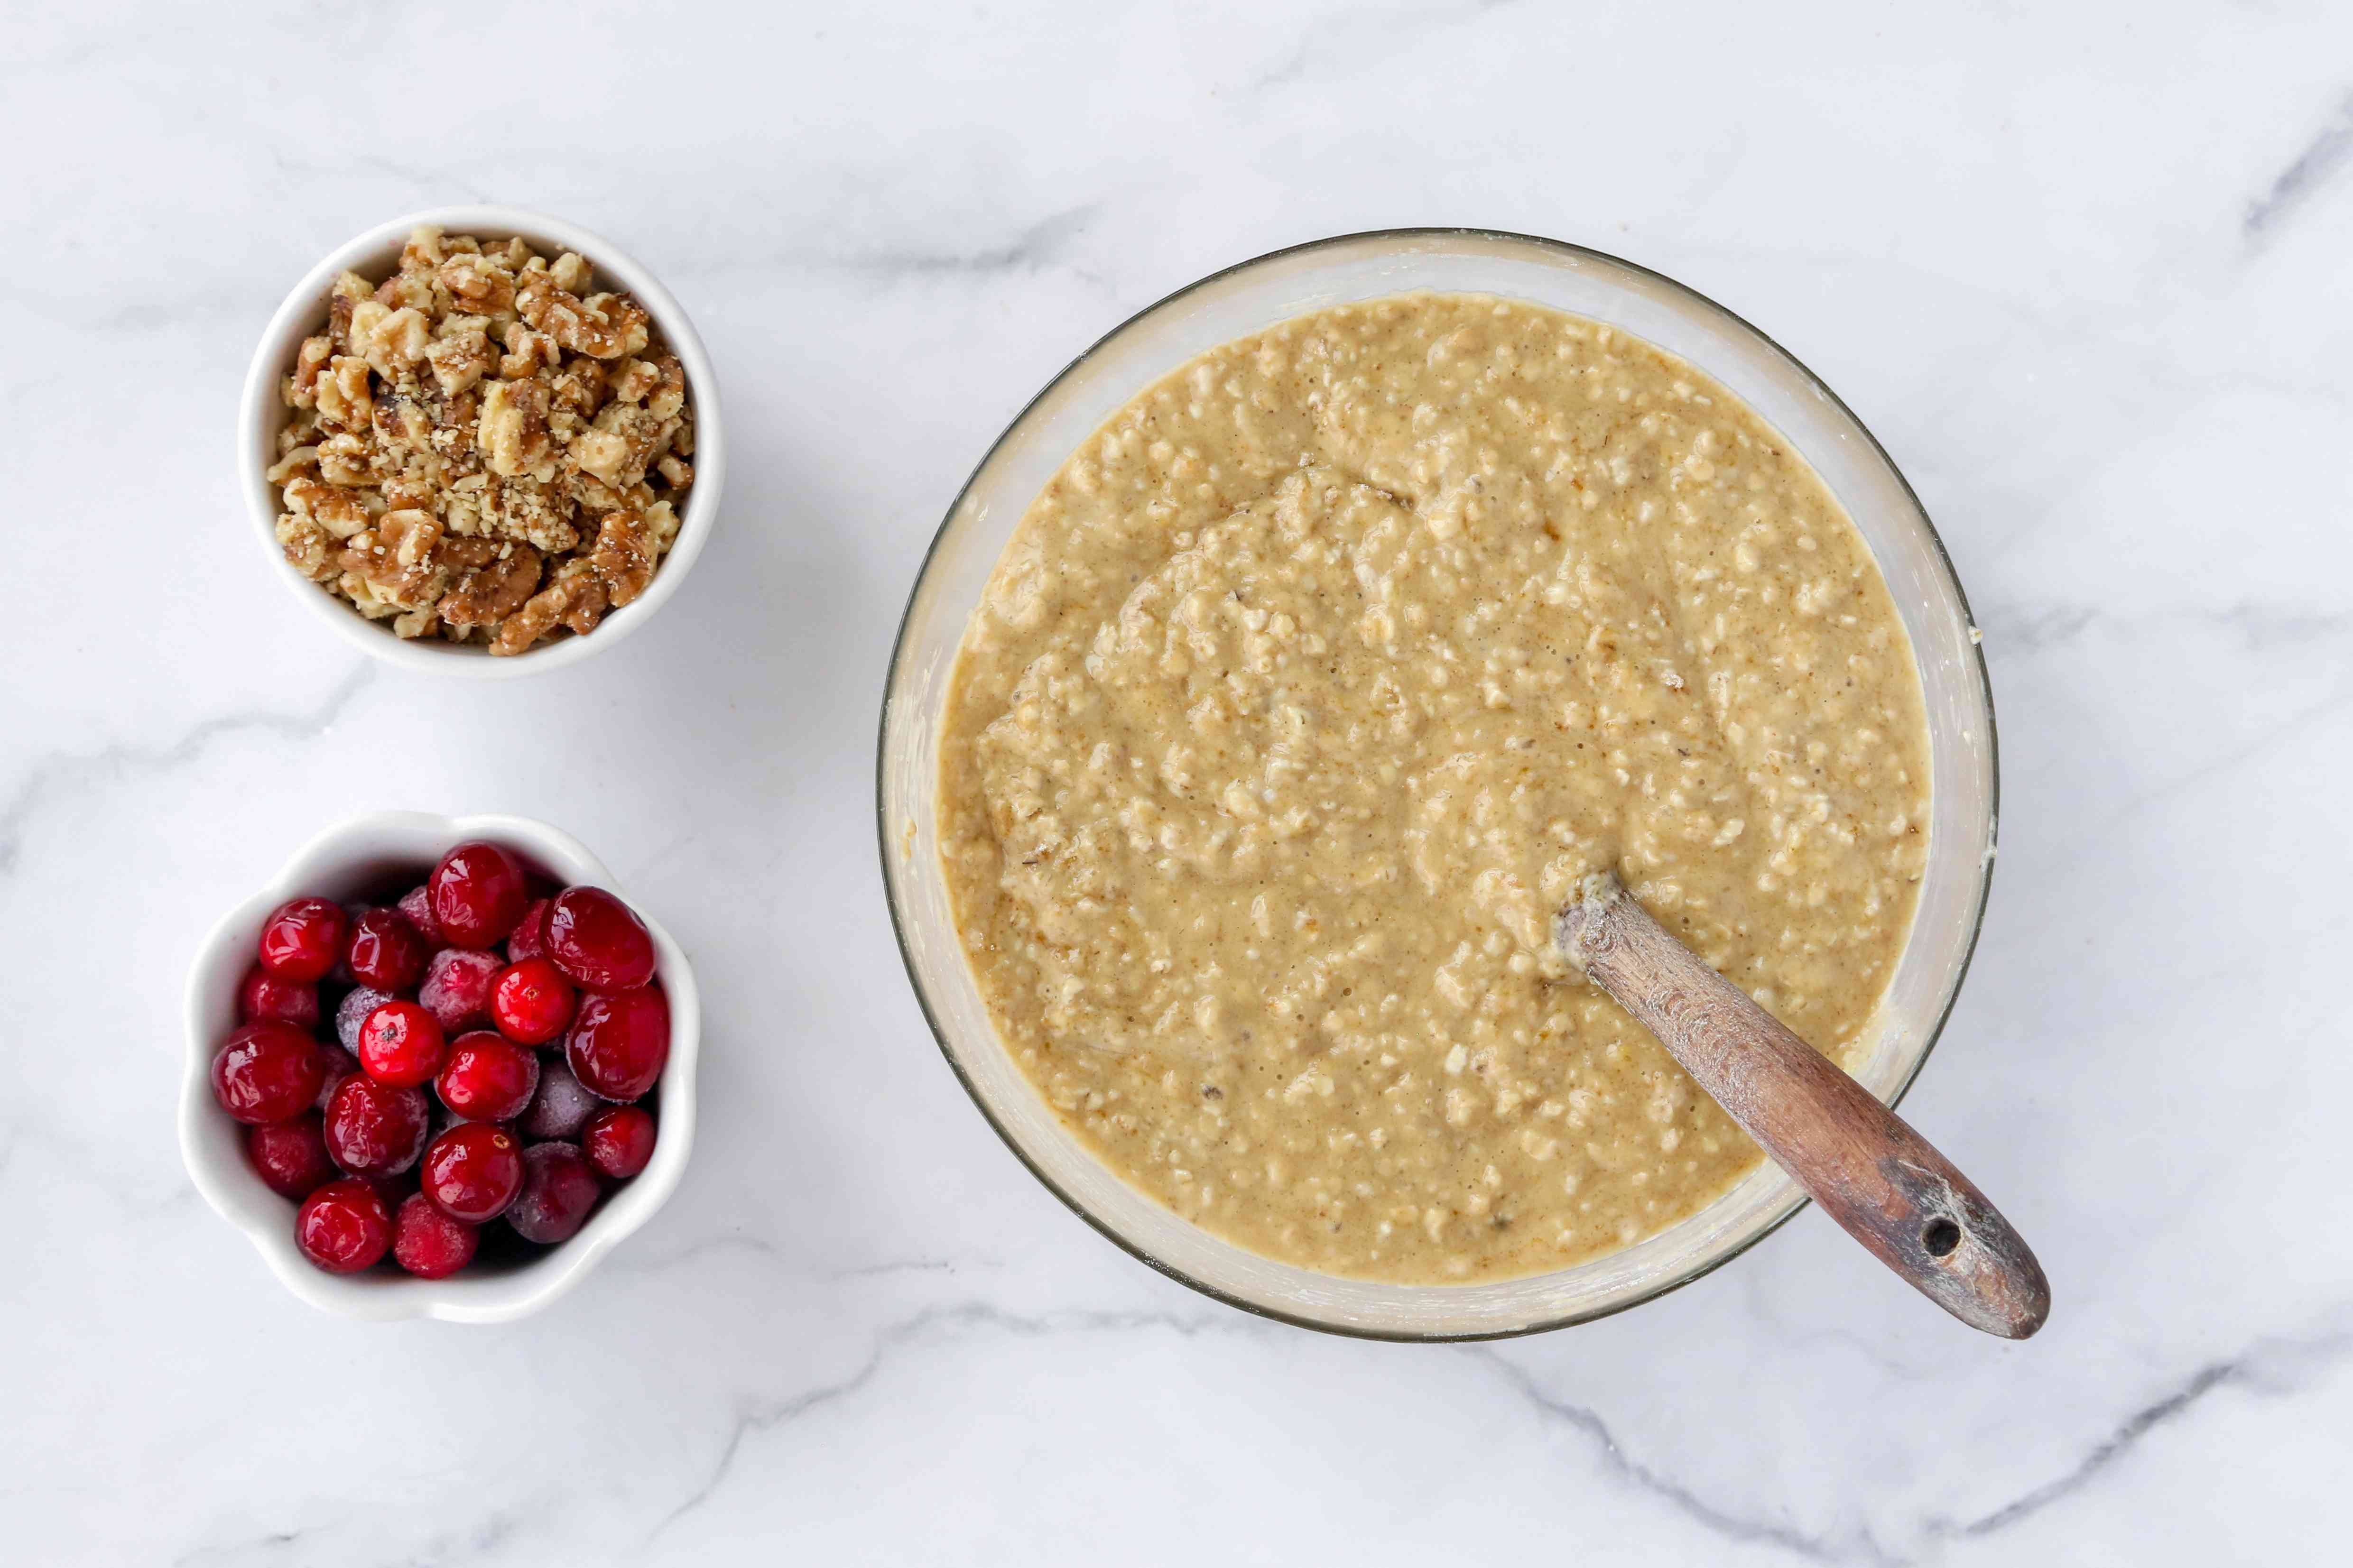 oatmeal mixture in a bowl, cranberries in a bowl, nuts in a bowl